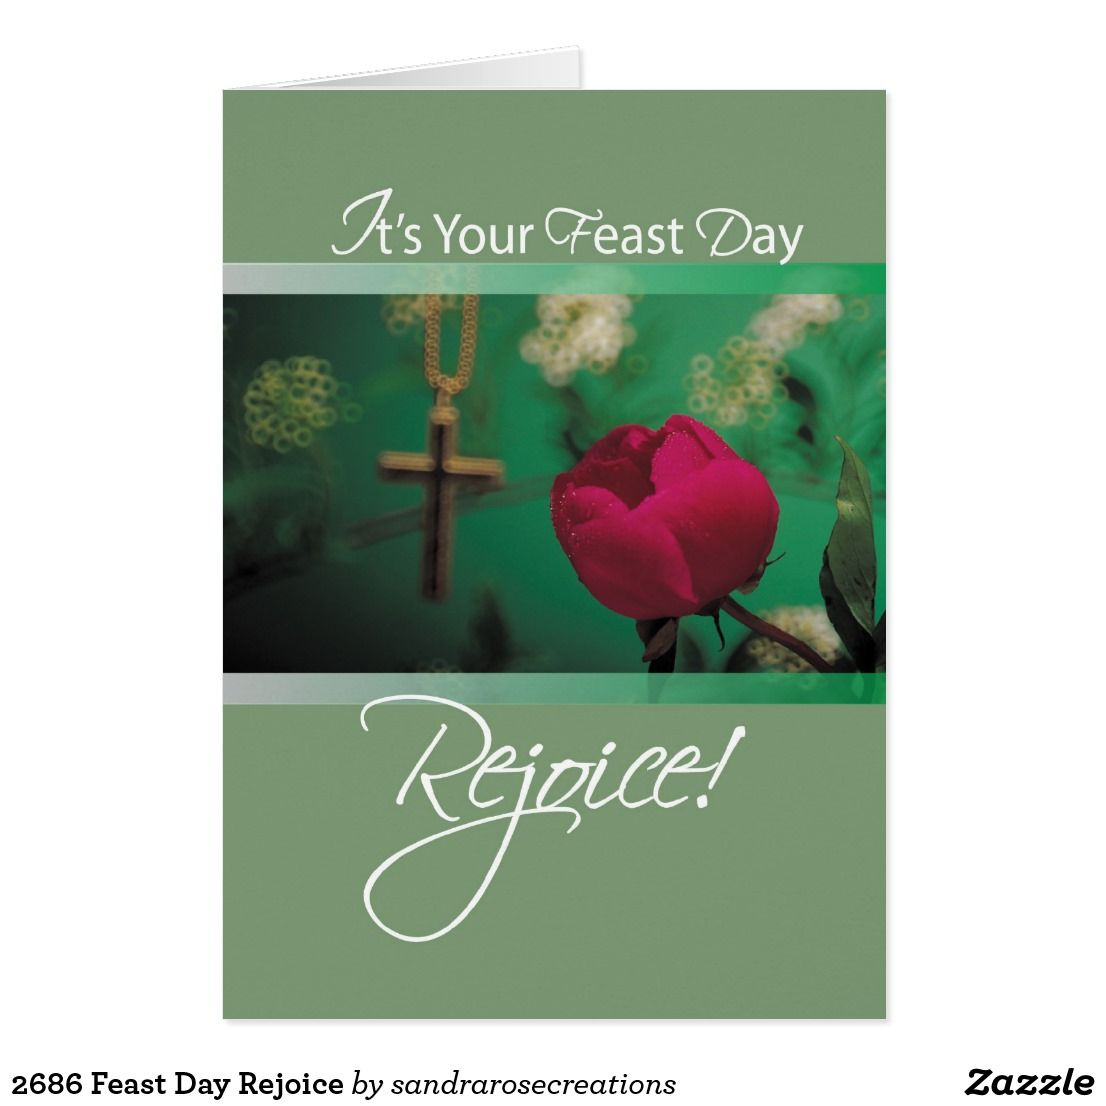 2686 Feast Day Rejoice Card In 2018 Religious Christian